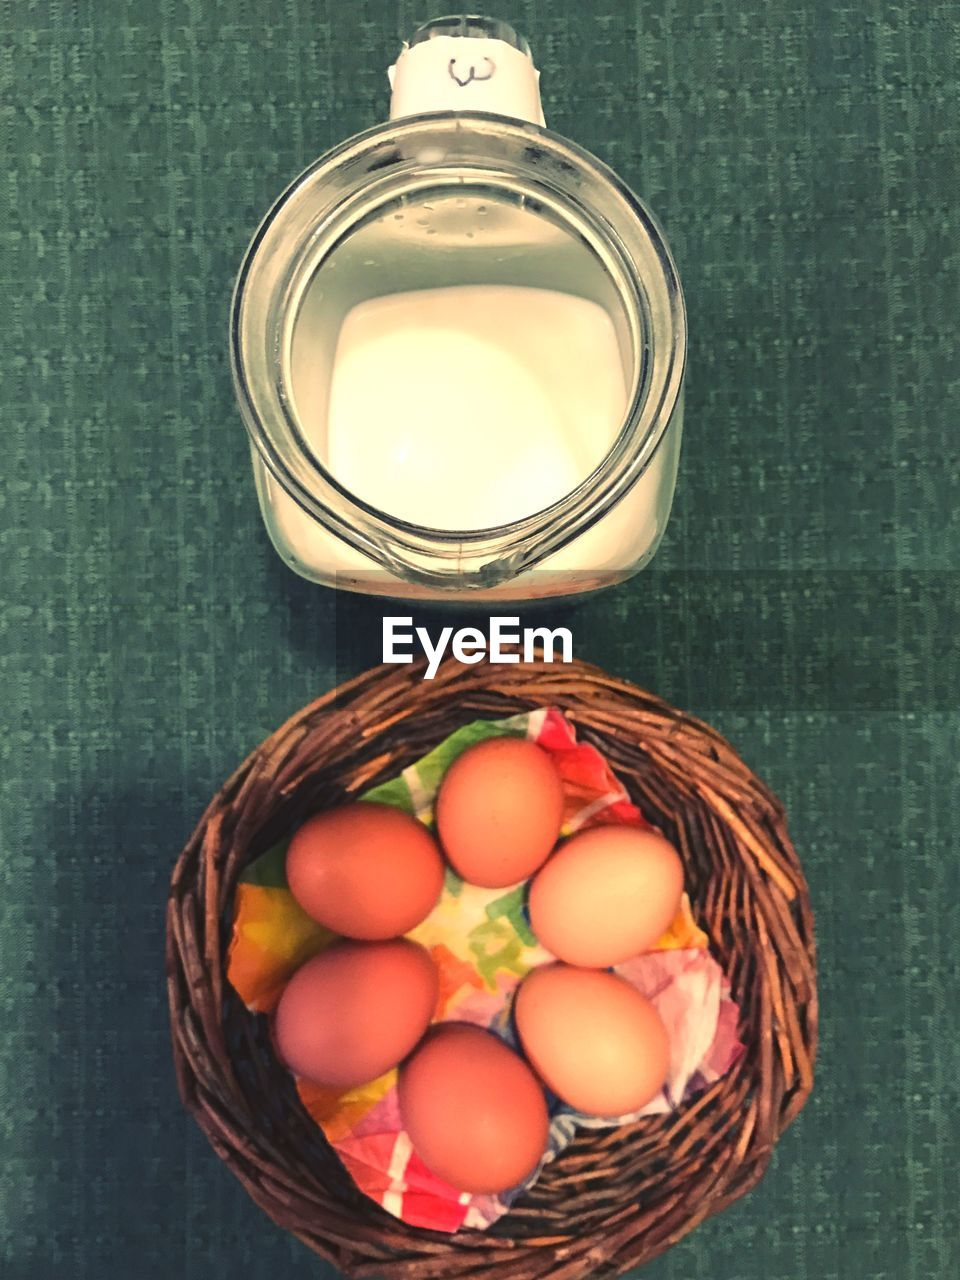 container, food, food and drink, egg, basket, freshness, indoors, wellbeing, still life, table, no people, high angle view, wicker, healthy eating, directly above, multi colored, glass - material, close-up, celebration